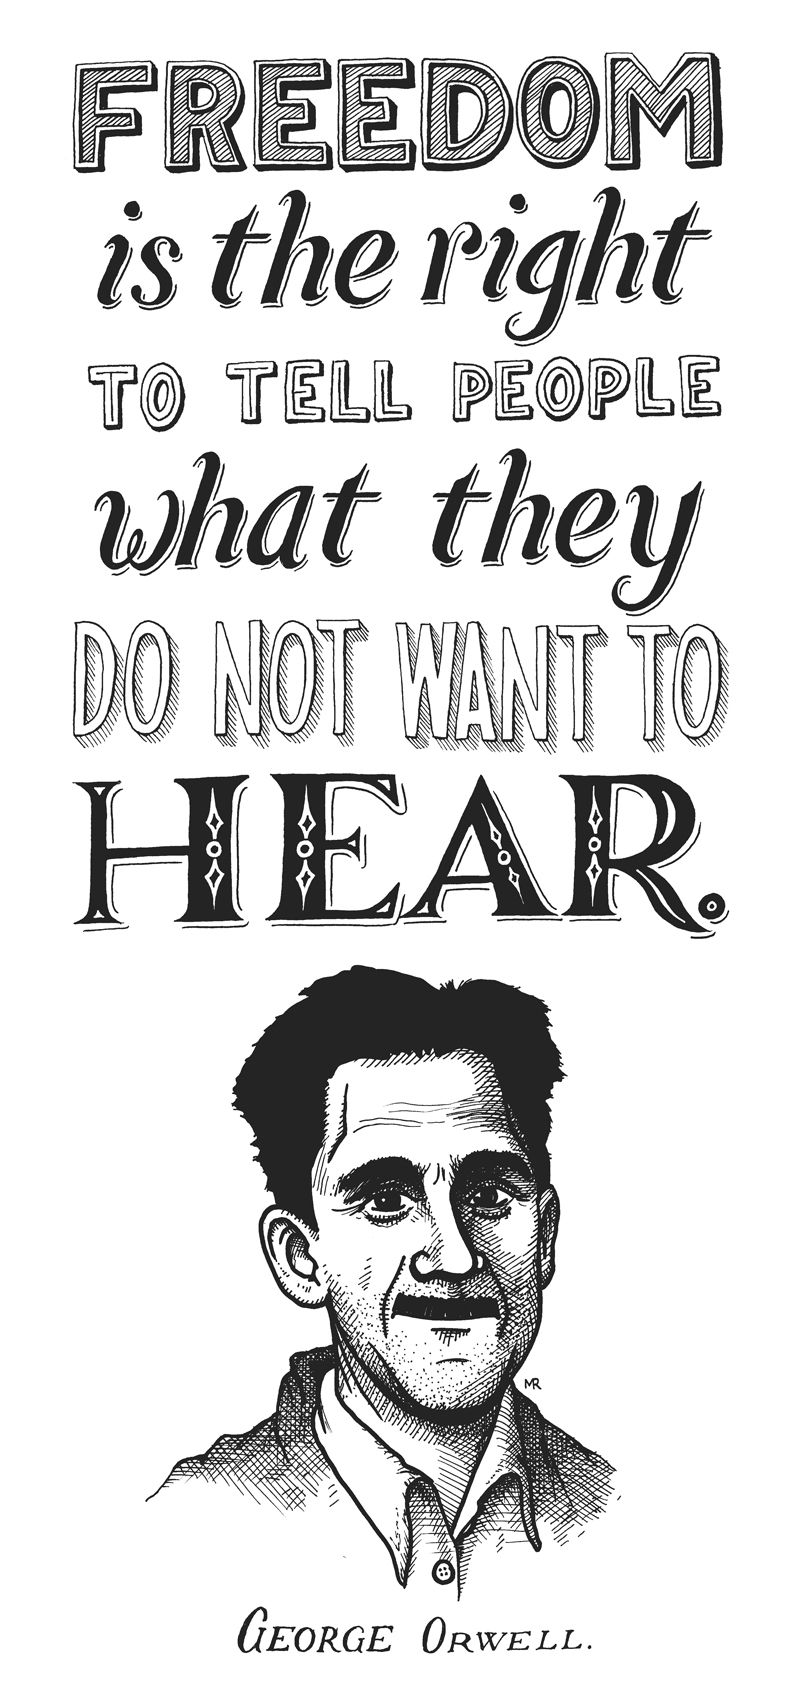 George Orwell It S Not Being Mean To Tell People Things They Need